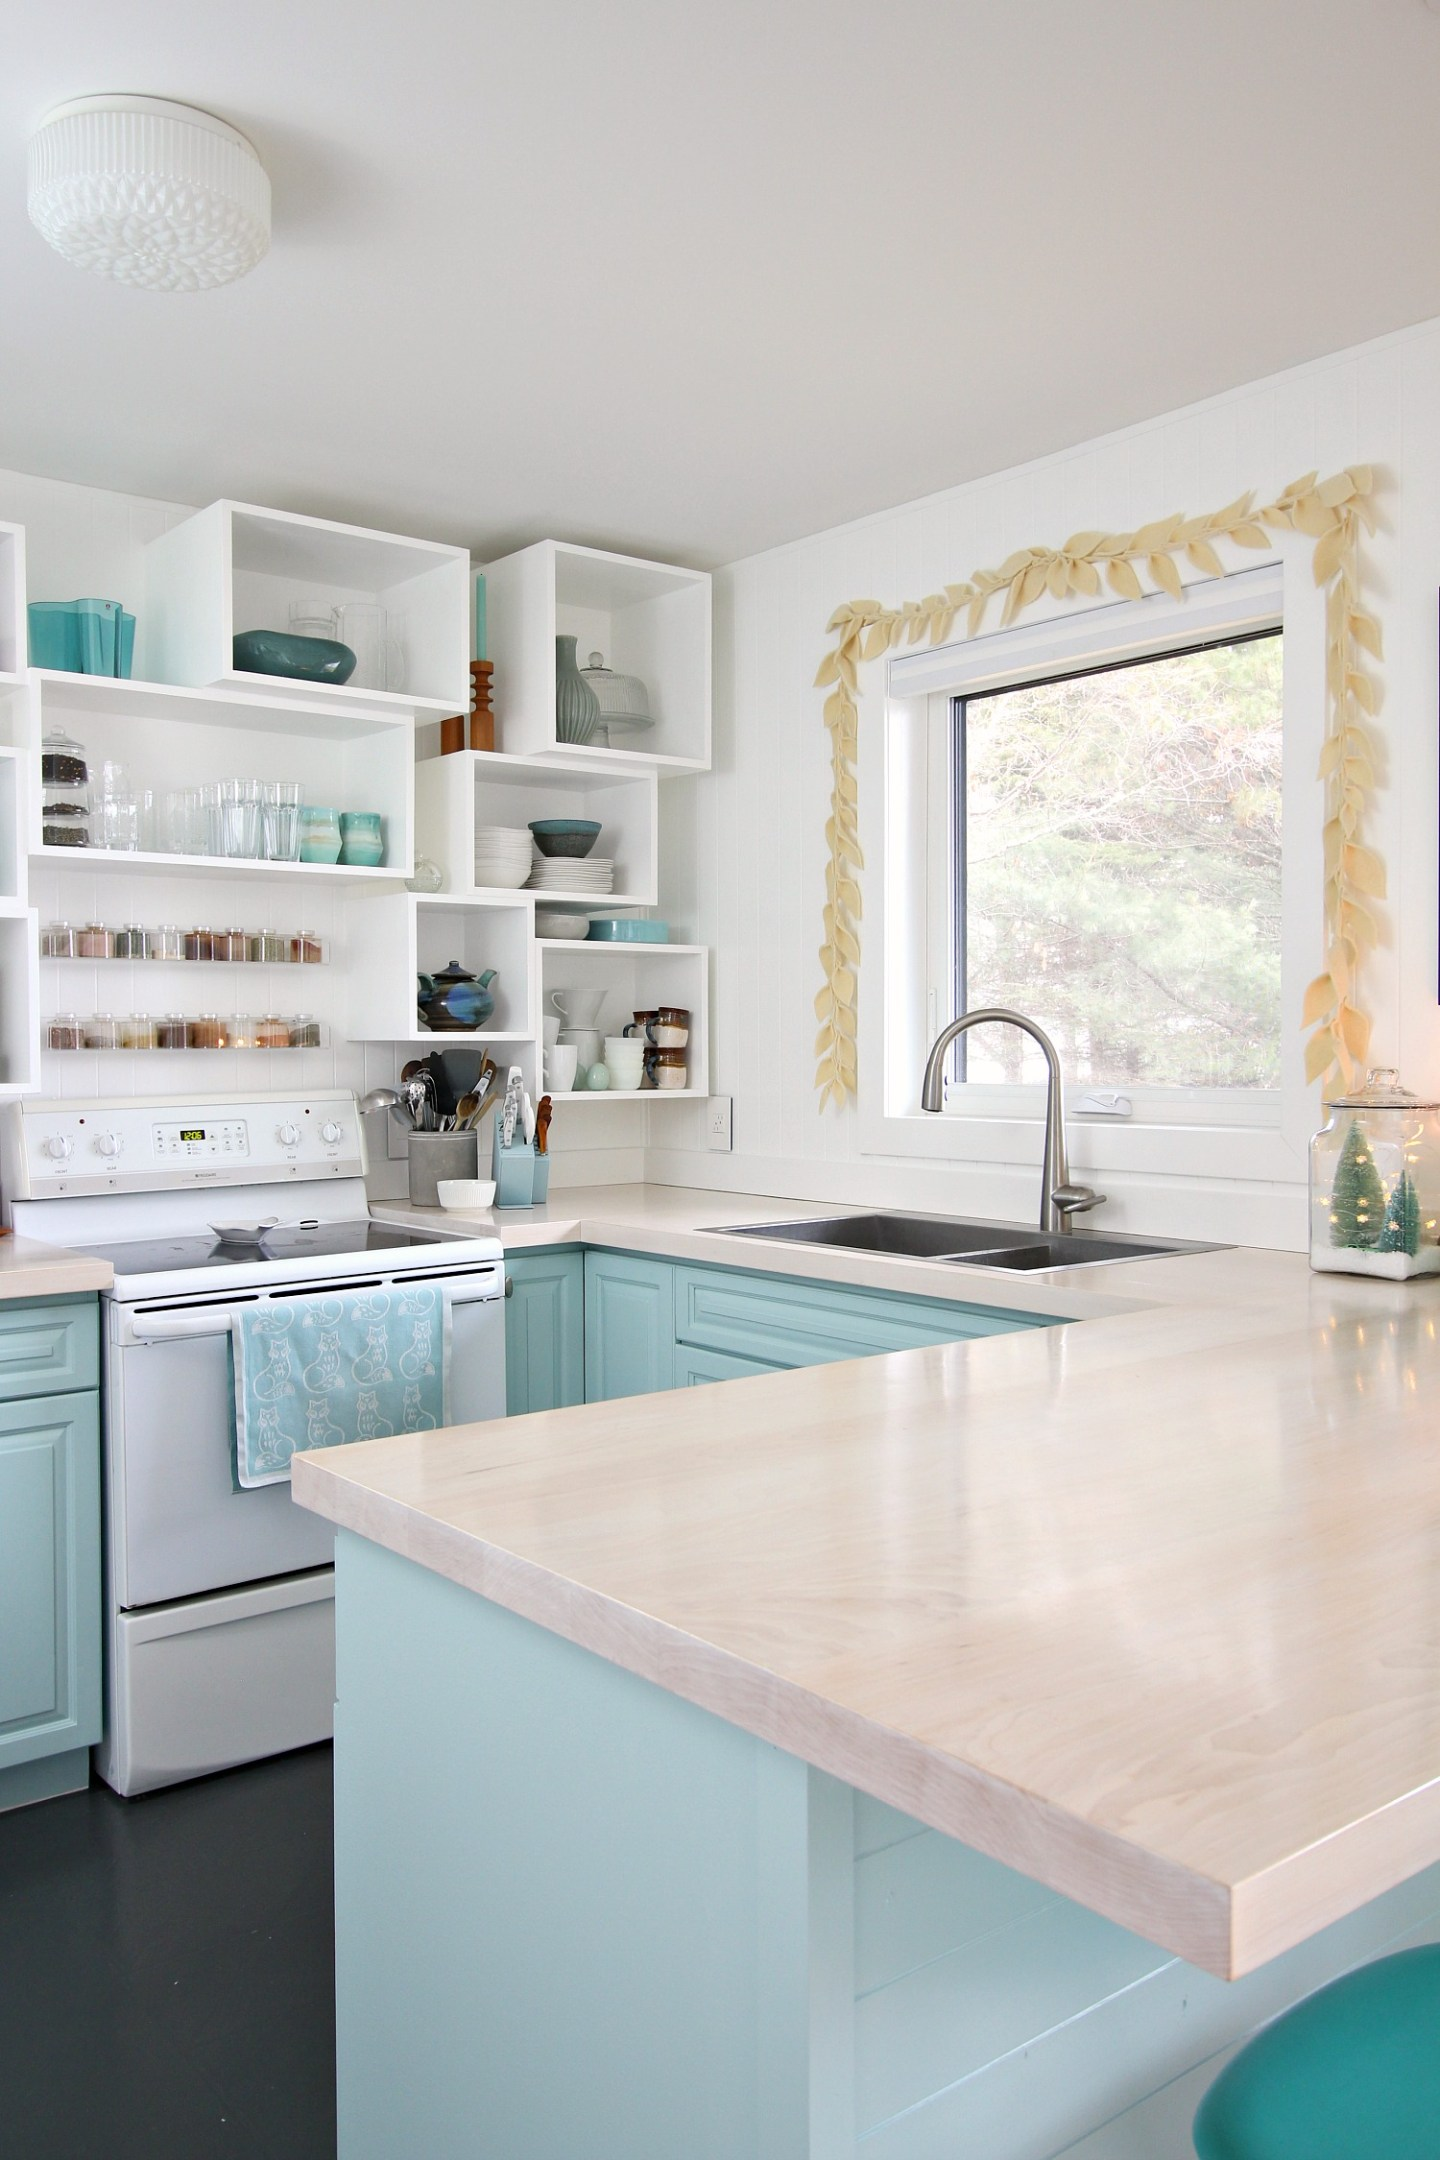 Pale Blue Kitchen Decorated for Christmas